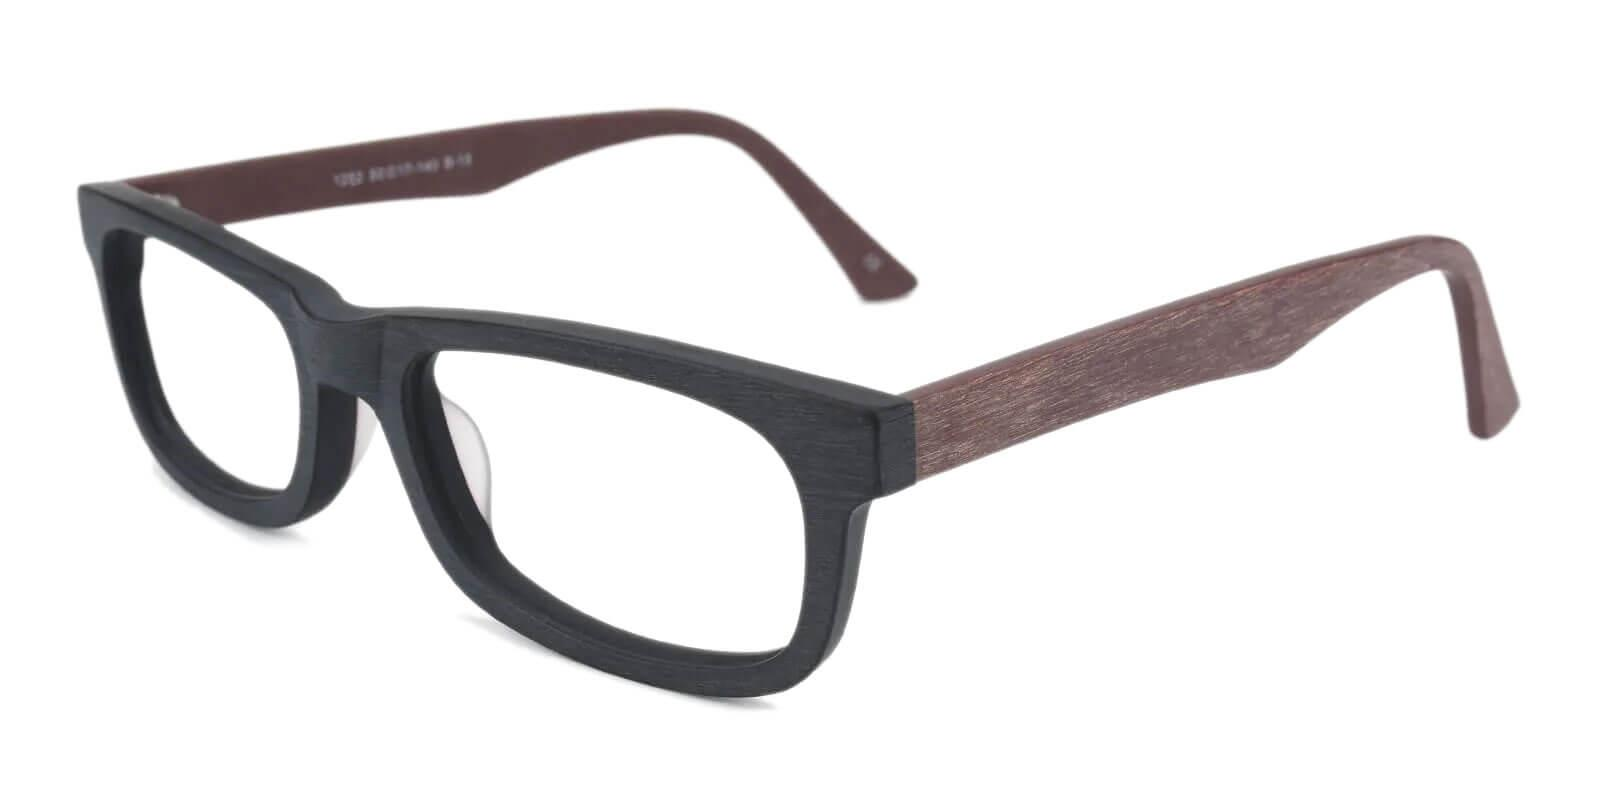 Chilliwack Brown TR Eyeglasses , UniversalBridgeFit Frames from ABBE Glasses